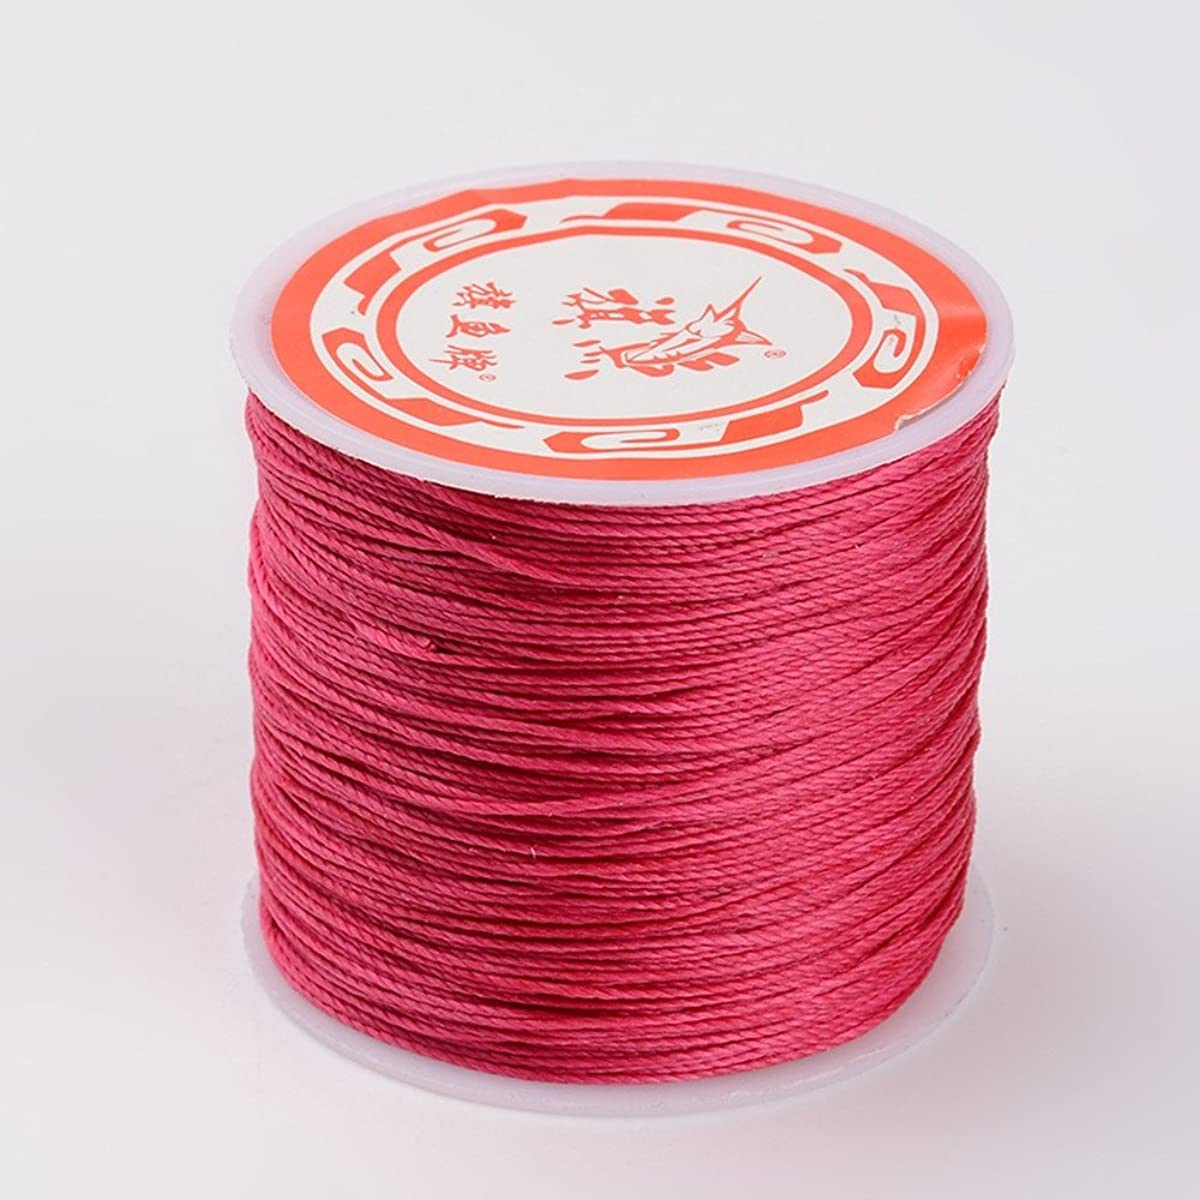 NBEADS 0.5mm 115 Yards Deep Pink Waxed Polyester Beading Cords and Threads Crafting Cord Waxed Thread for Jewelry Making Bracelet